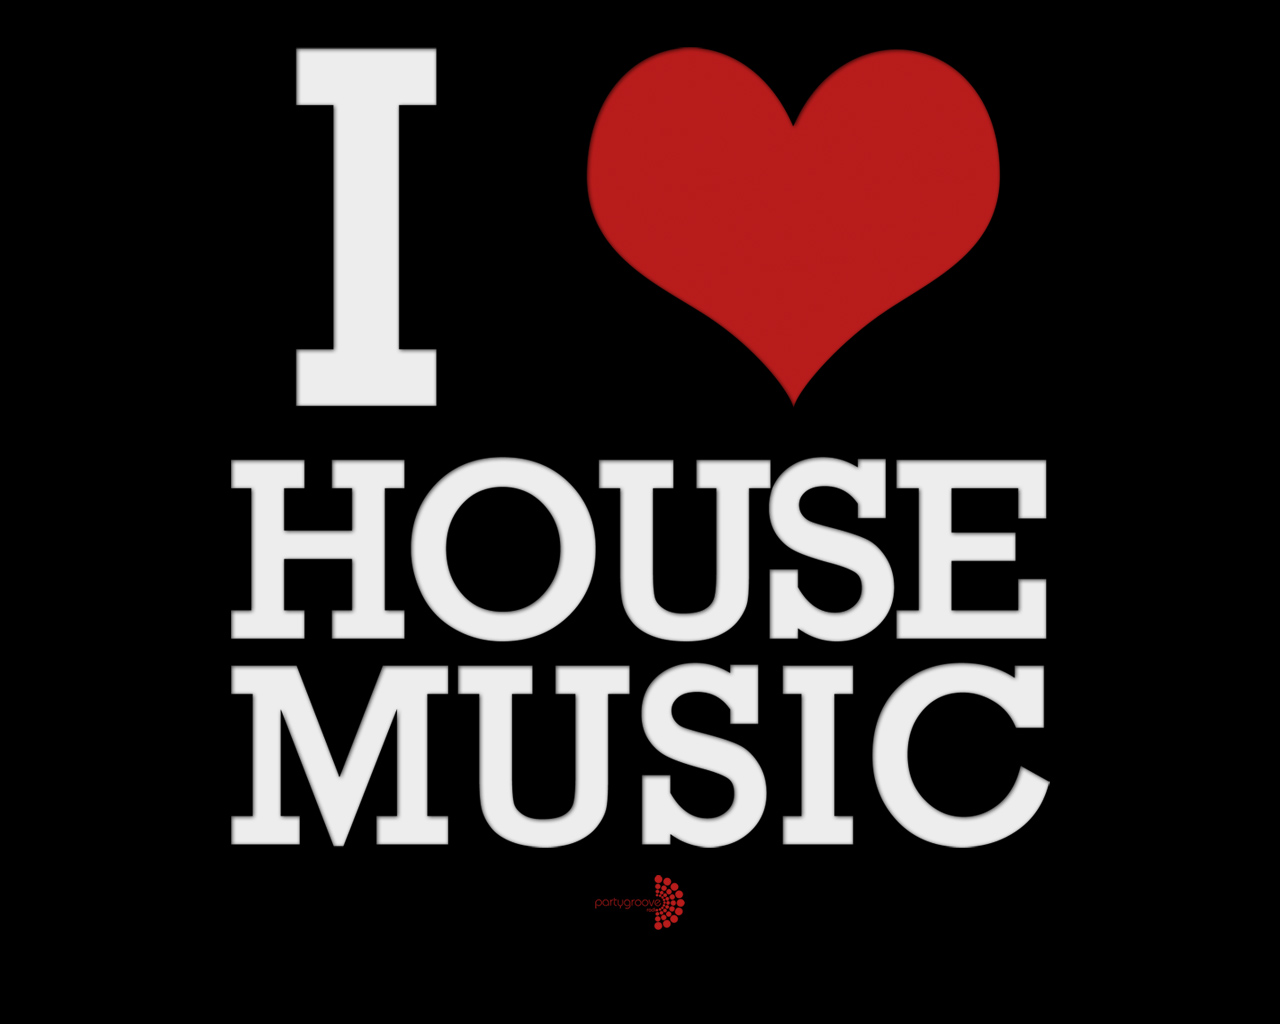 House music quotes quotesgram for House musik dj